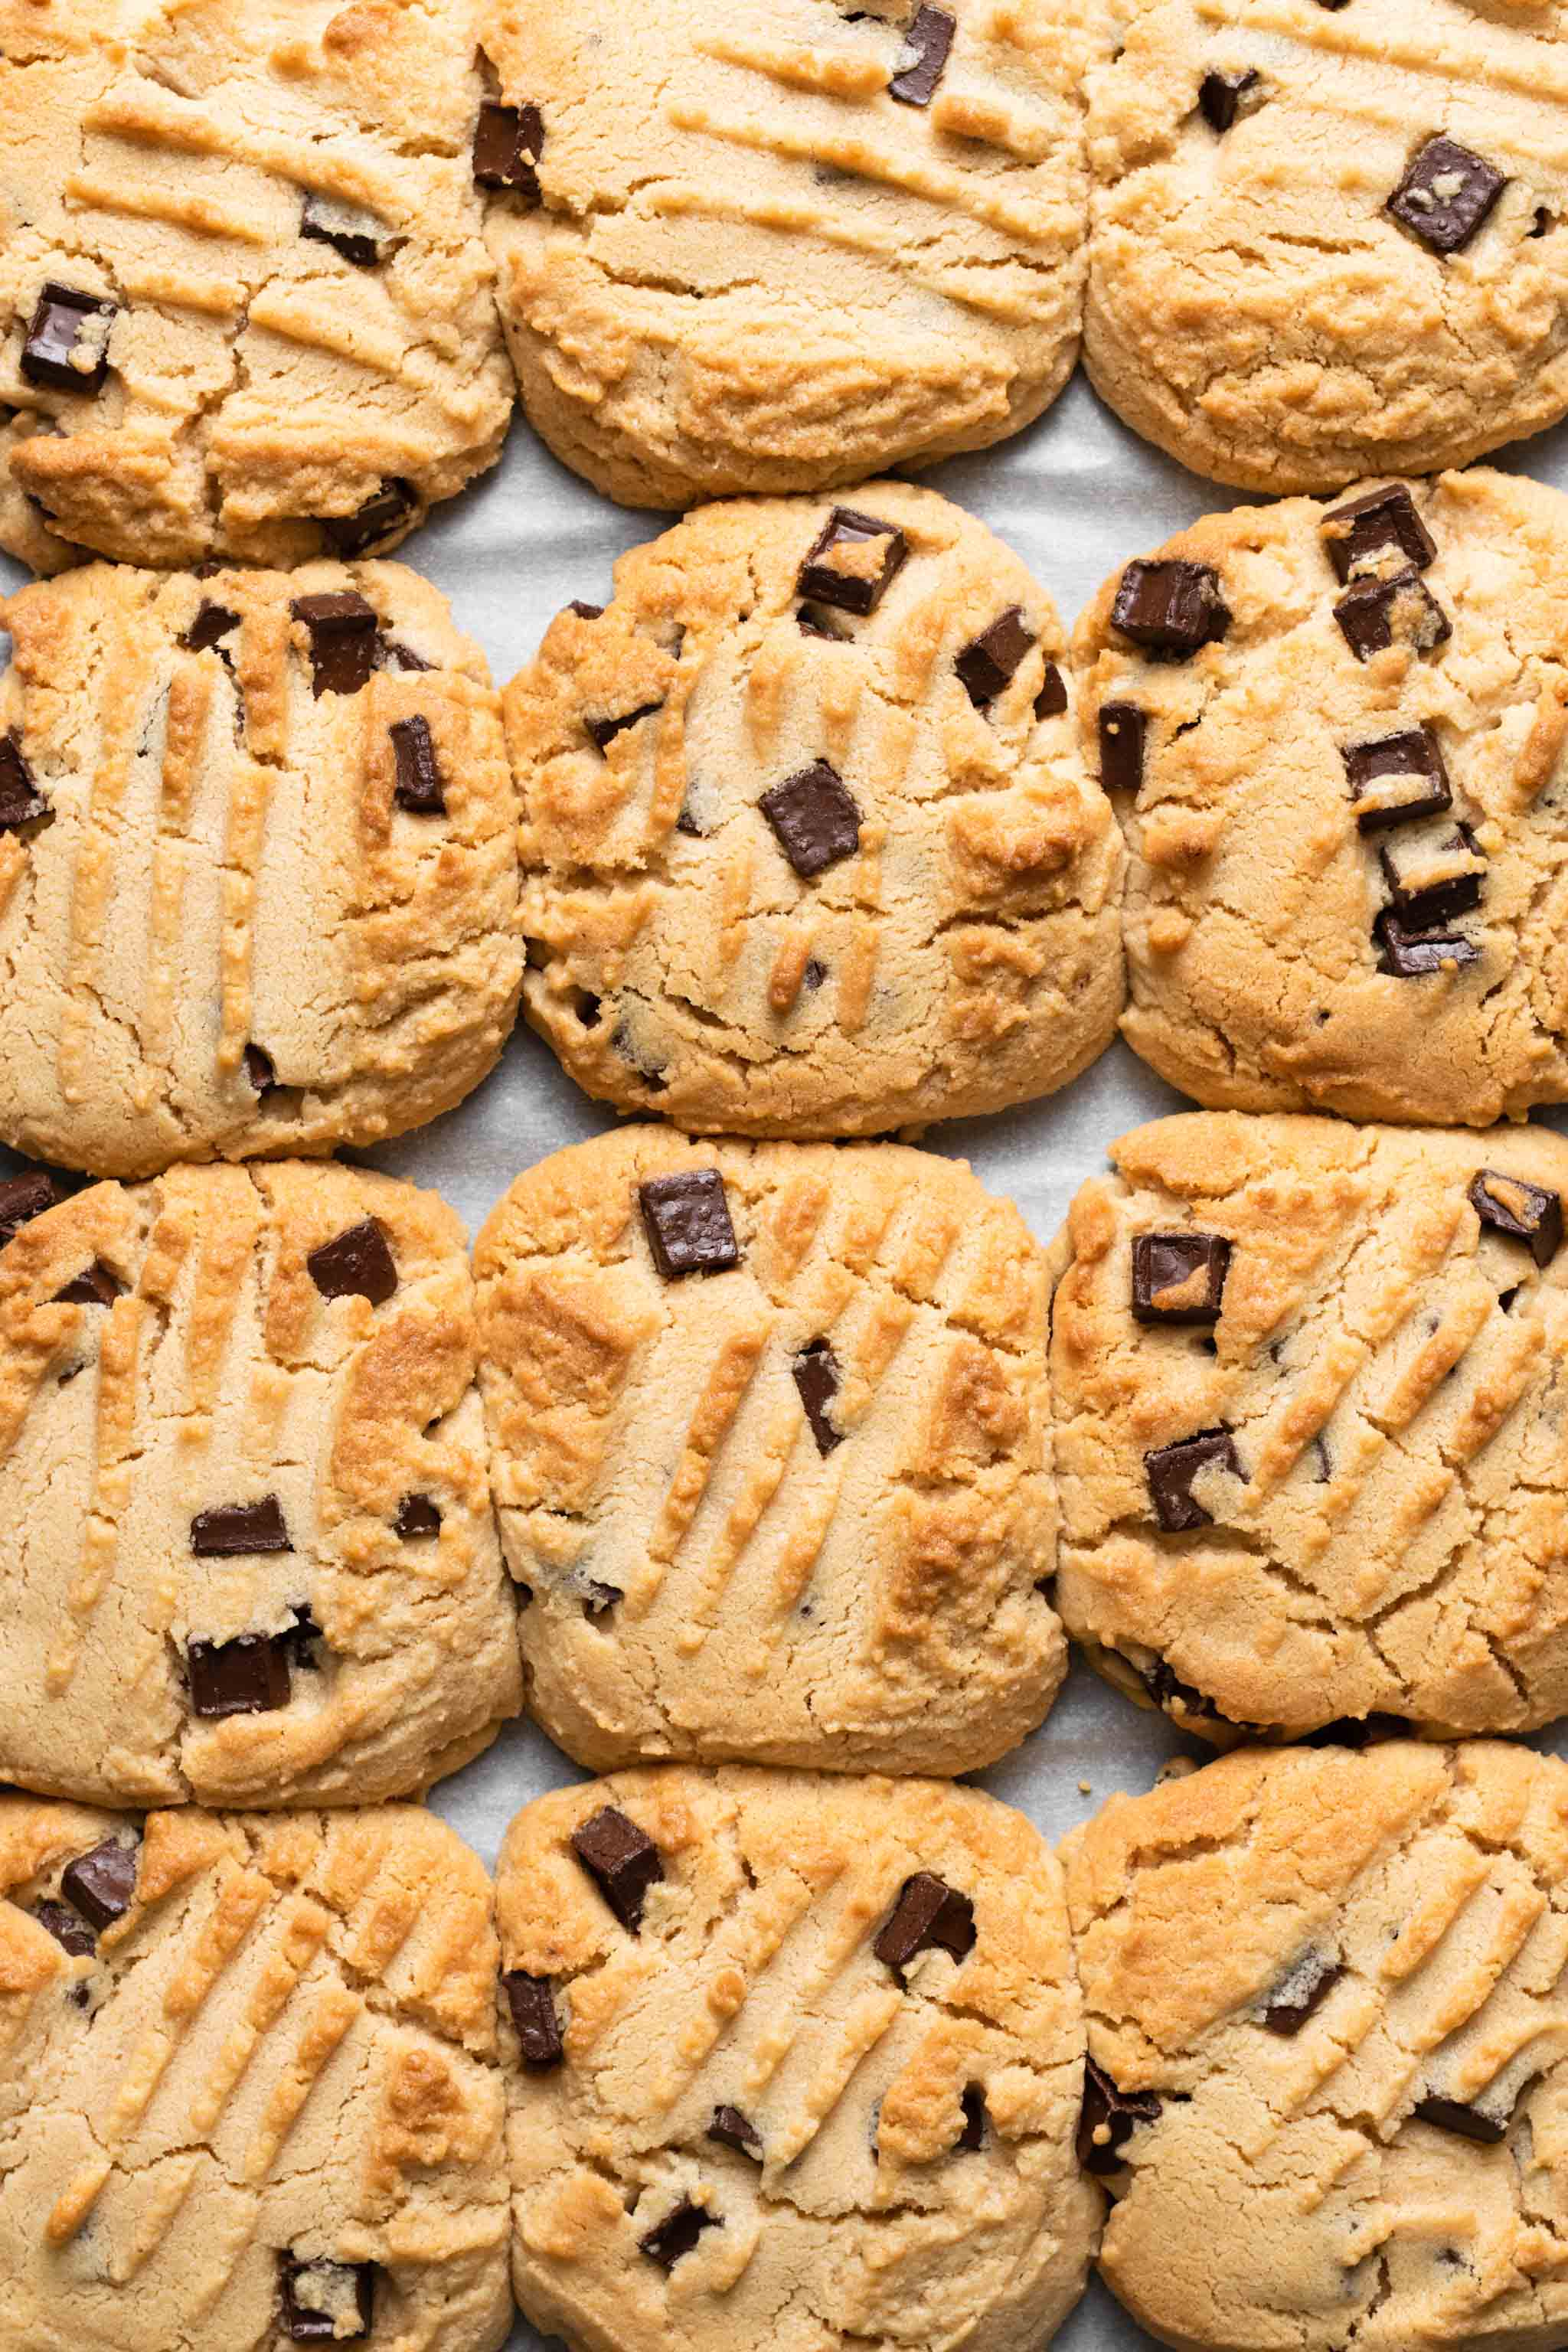 Bakes Peanut Butter Chocolate Chunk Cookie Dough Recipe